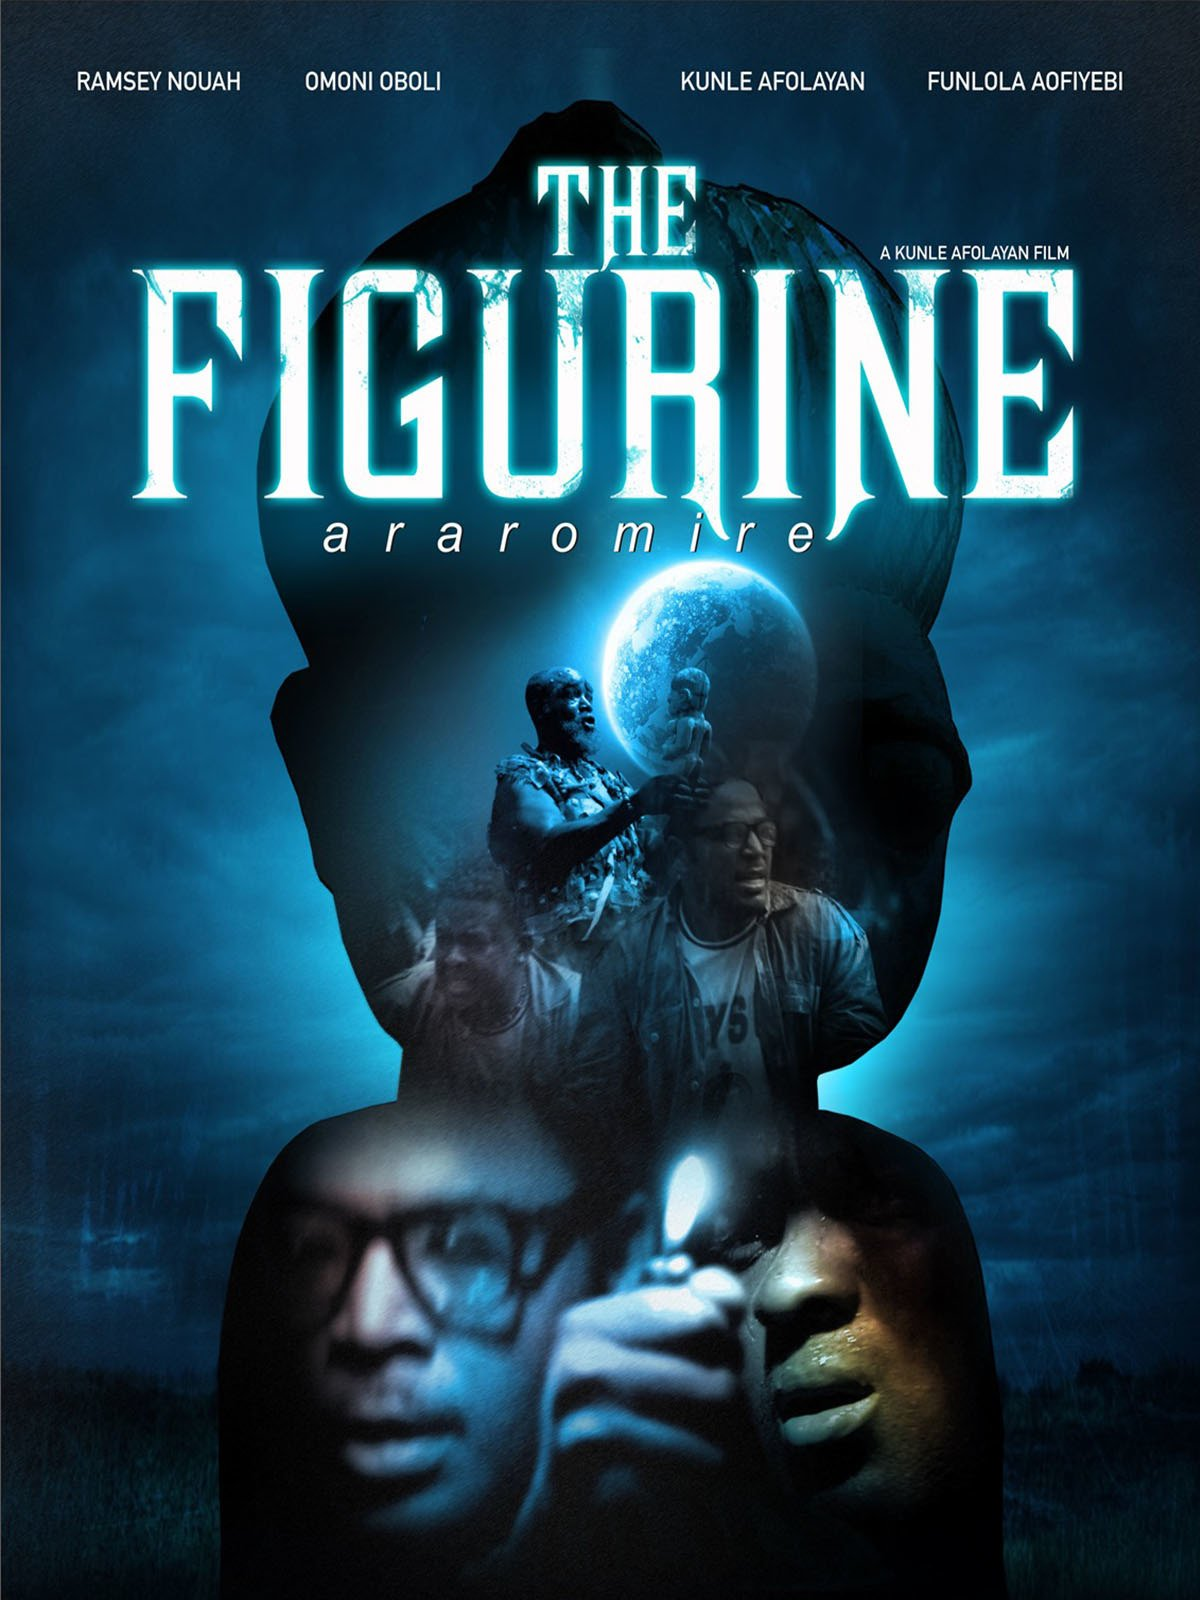 The Figurine